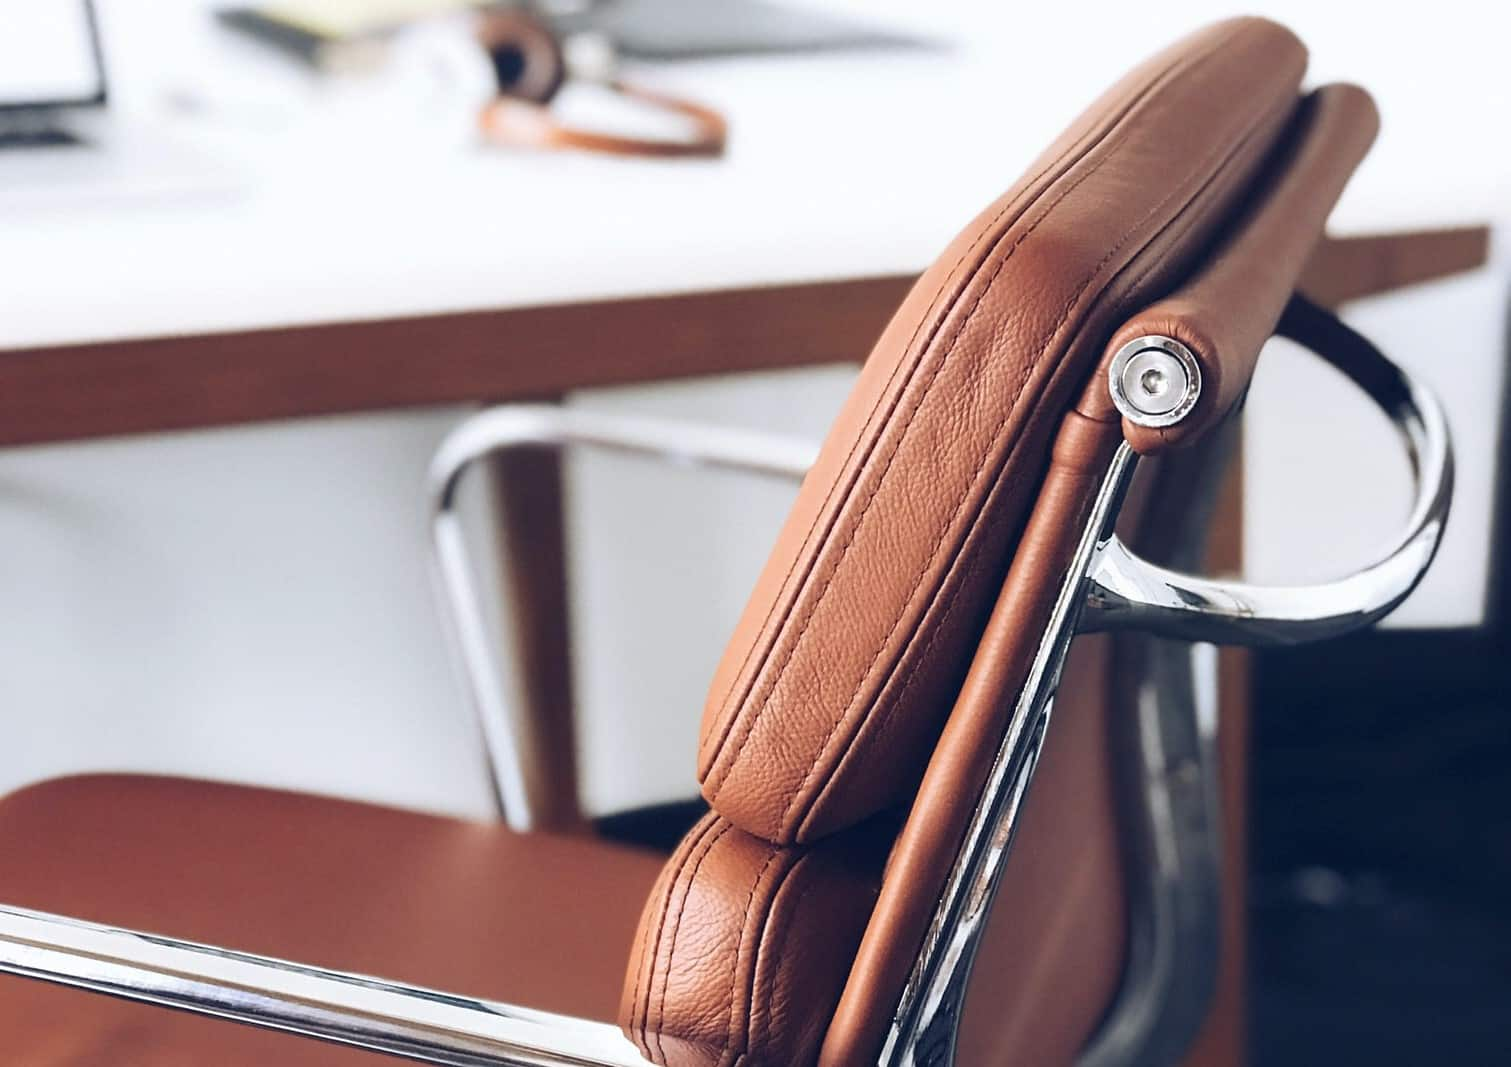 Top 10 Best Home Office Chairs Choice Made Easy